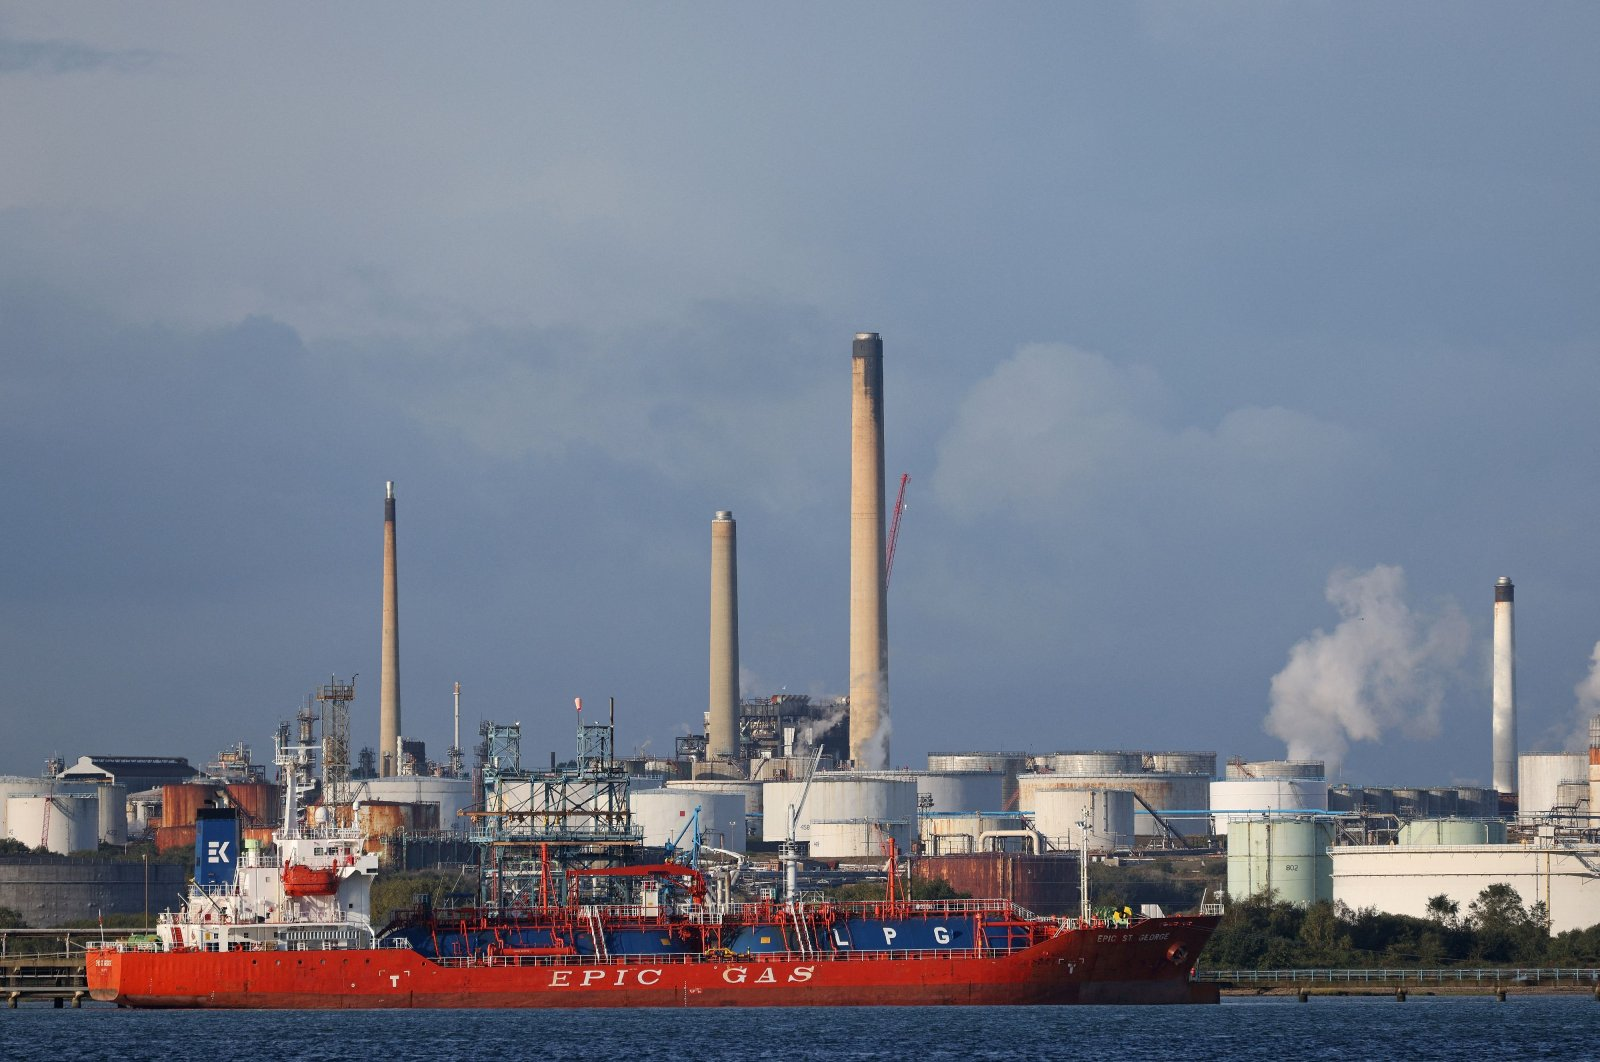 The MV Epic St George LNG (liquid natural gas tanker) passes the Esso Oil refinery in Fawley, near Southampton, southern England, Oct. 4, 2021. (AFP Photo)